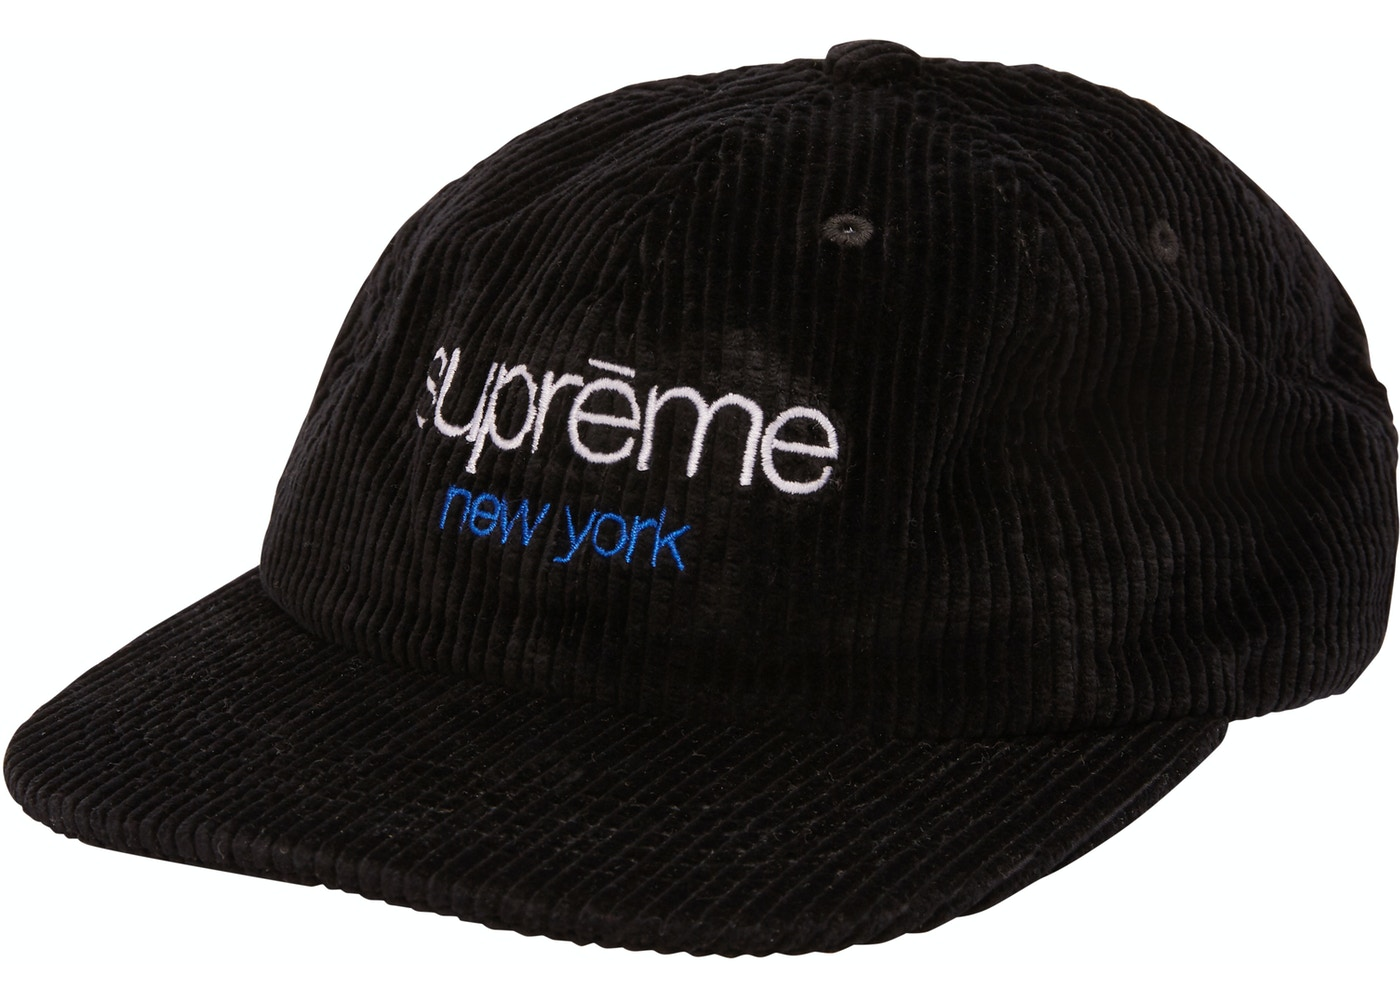 df3f9f52aaa Supreme Headwear - Buy   Sell Streetwear